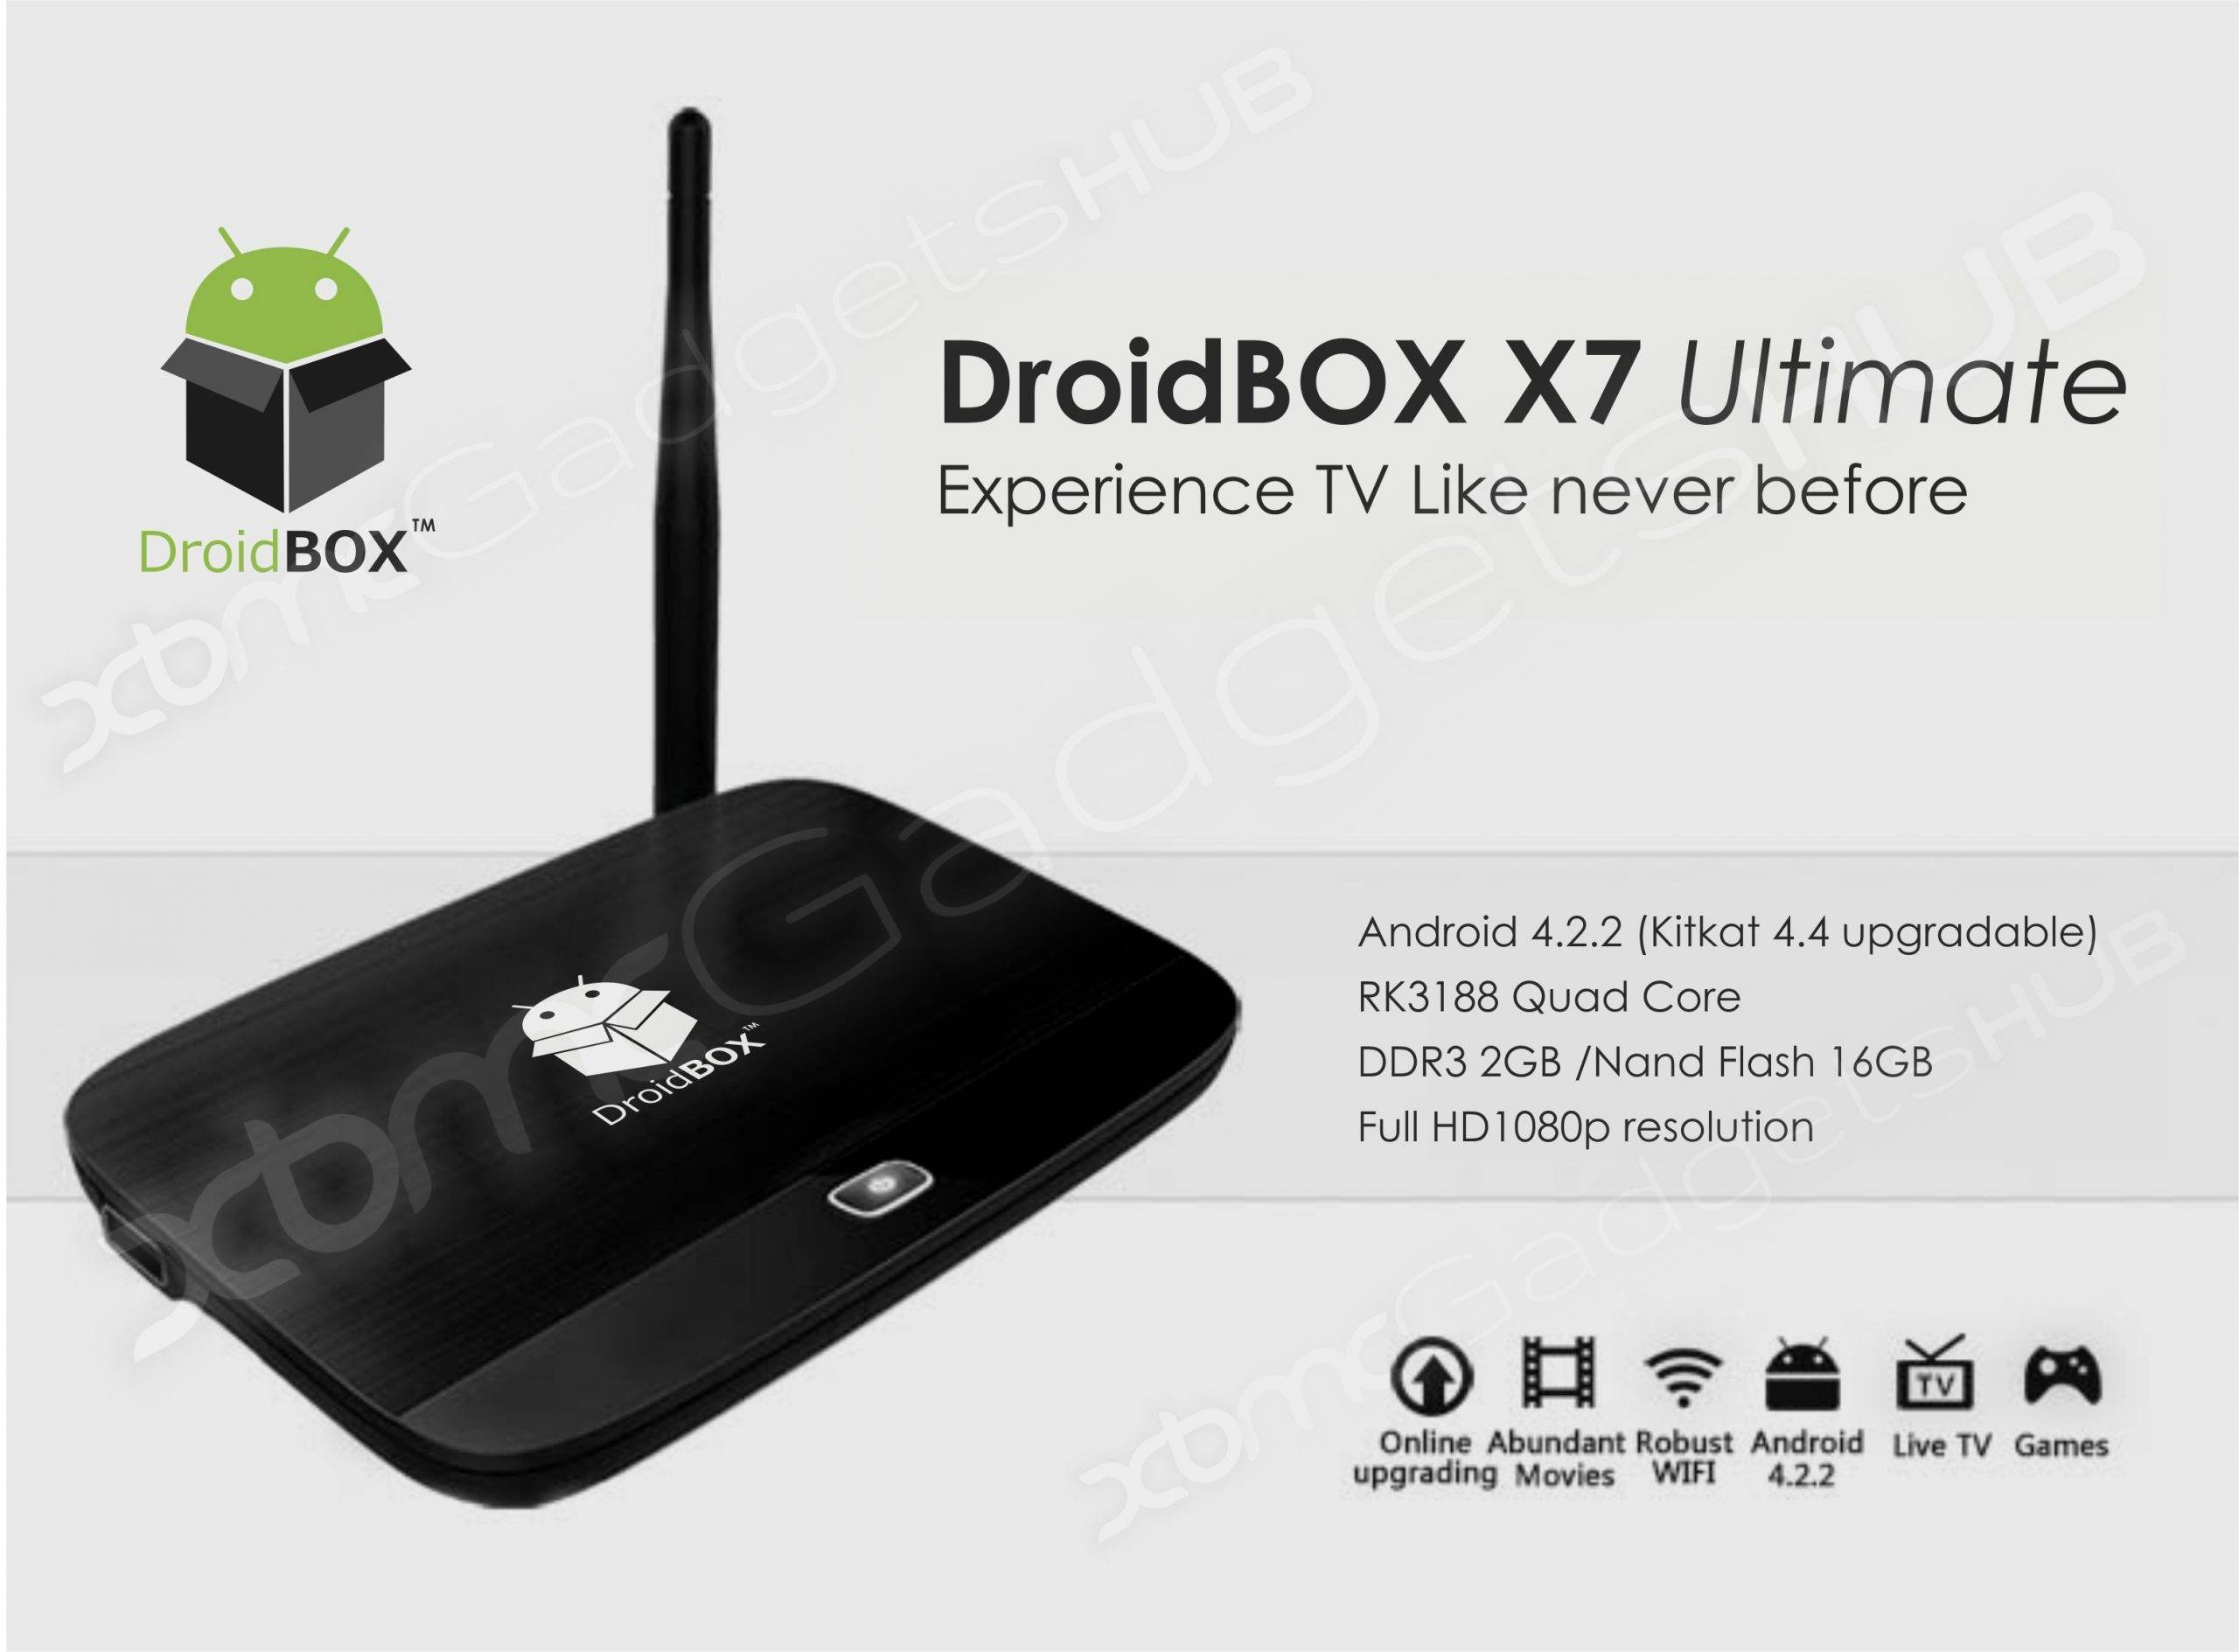 DroidBOX X7 Ultimate User Interface